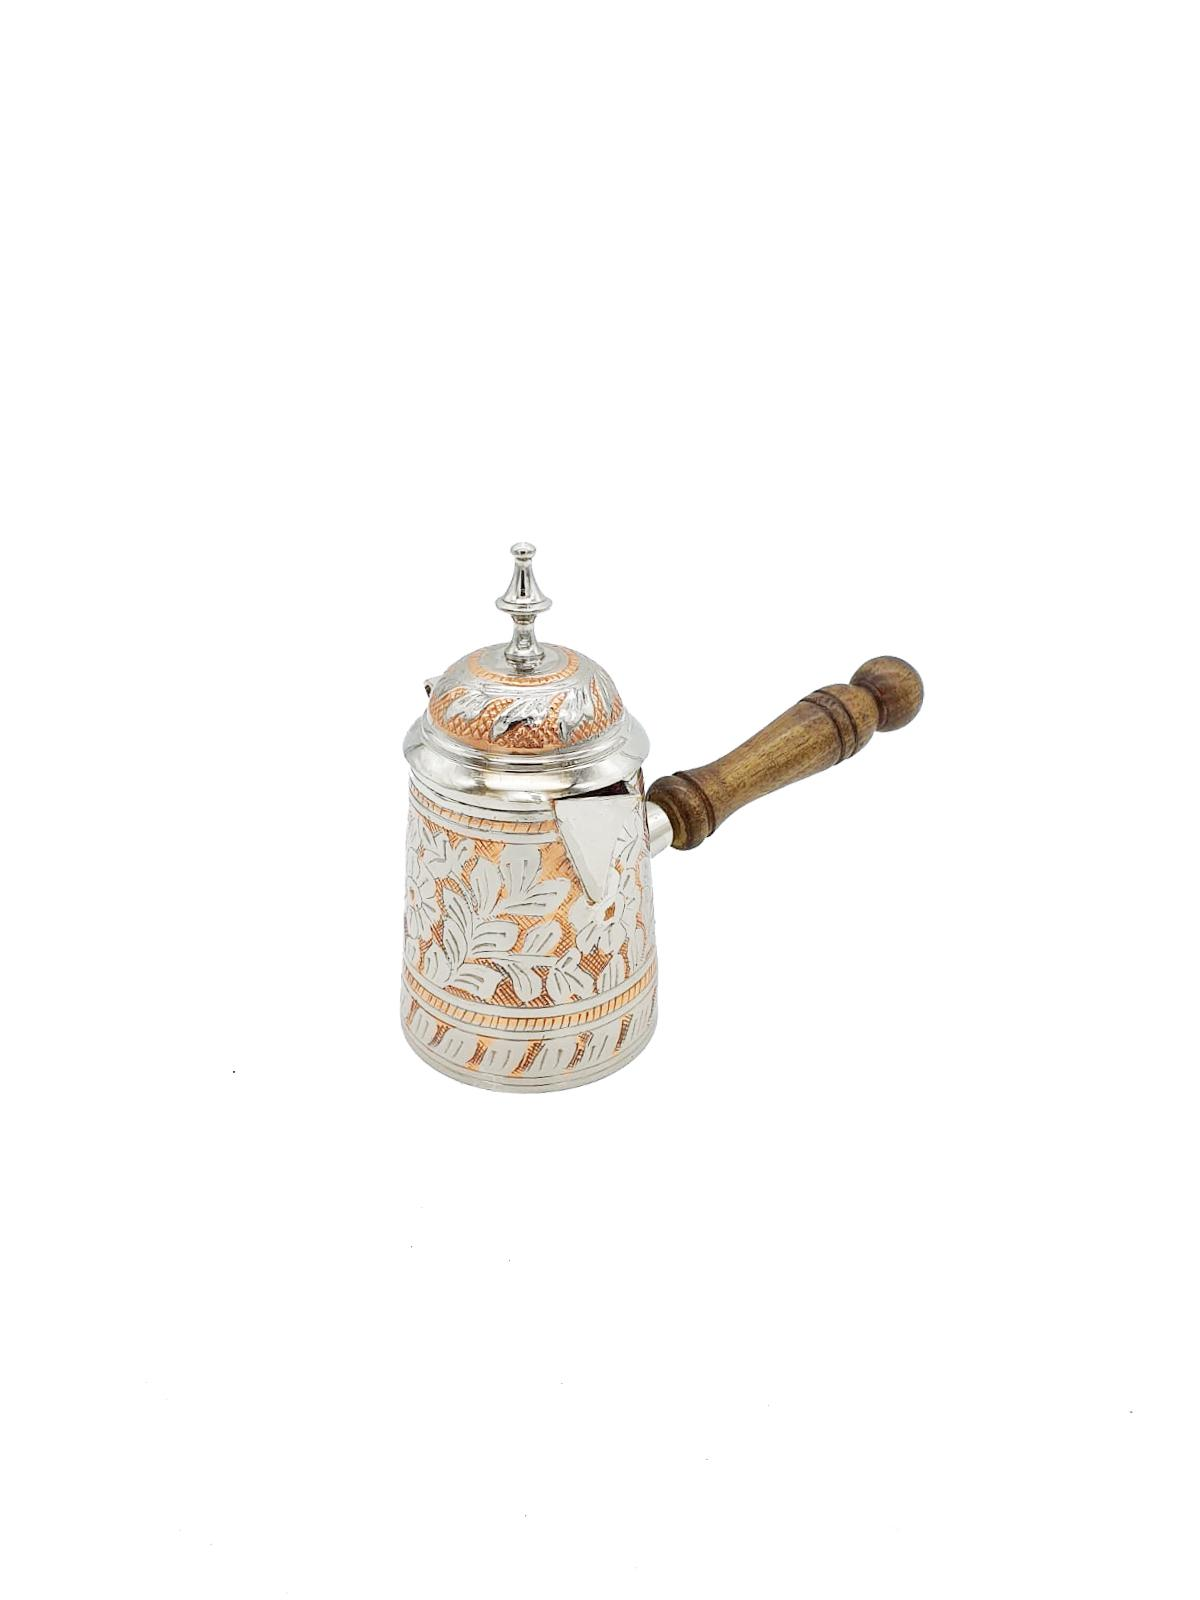 Buy Silver Coffee Pot with Lid and Wooden Handle